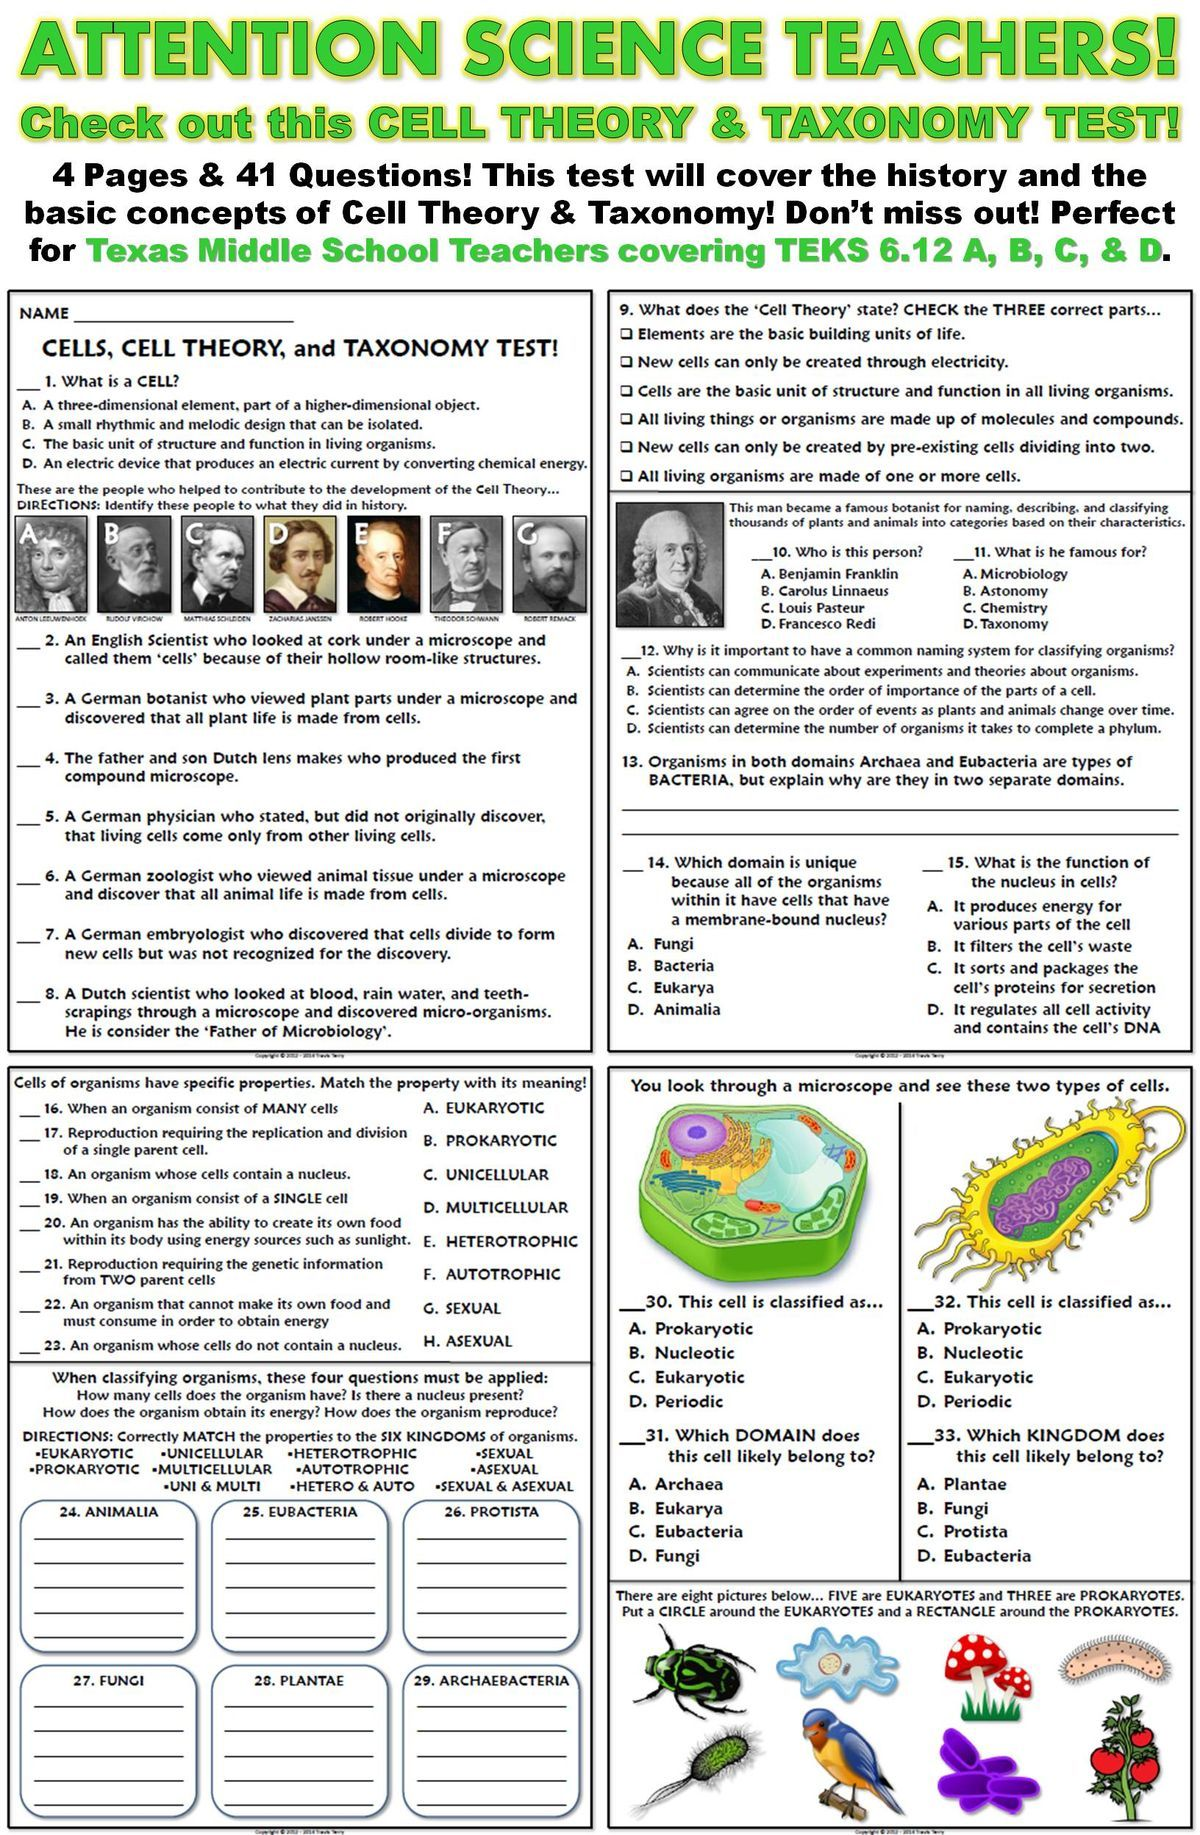 Pin By Beth Smith On School Ideas Pinterest Biology Cell Theory Prokaryotic And Eukaryotic Two Basic Types Of Biological Cells Lessons Ap Teaching Science Life